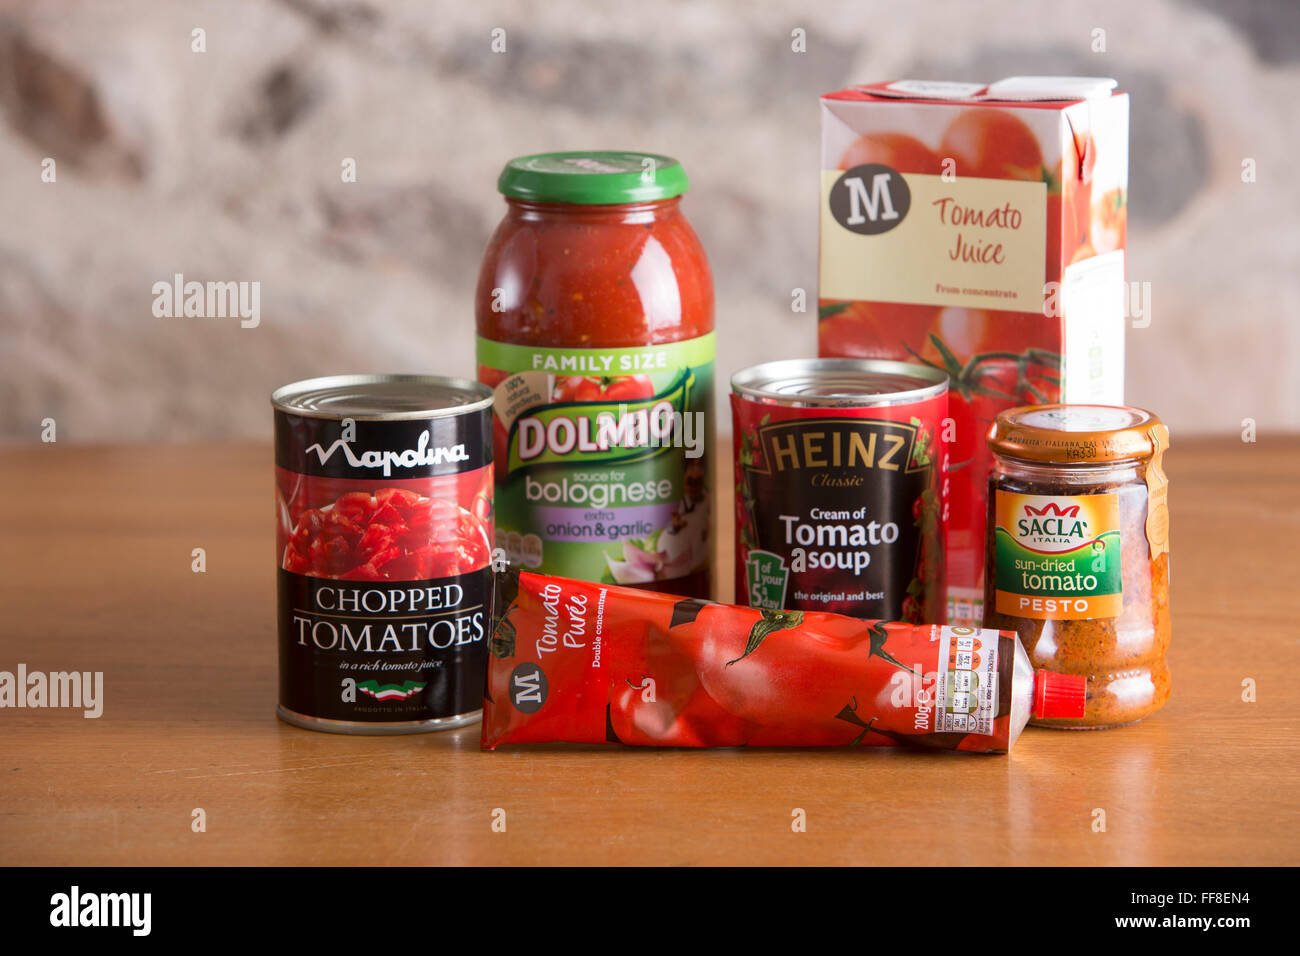 Selection of preserved tomato products including soup, juice, sauce, puree and canned all sitting on a country kitchen - Stock Image